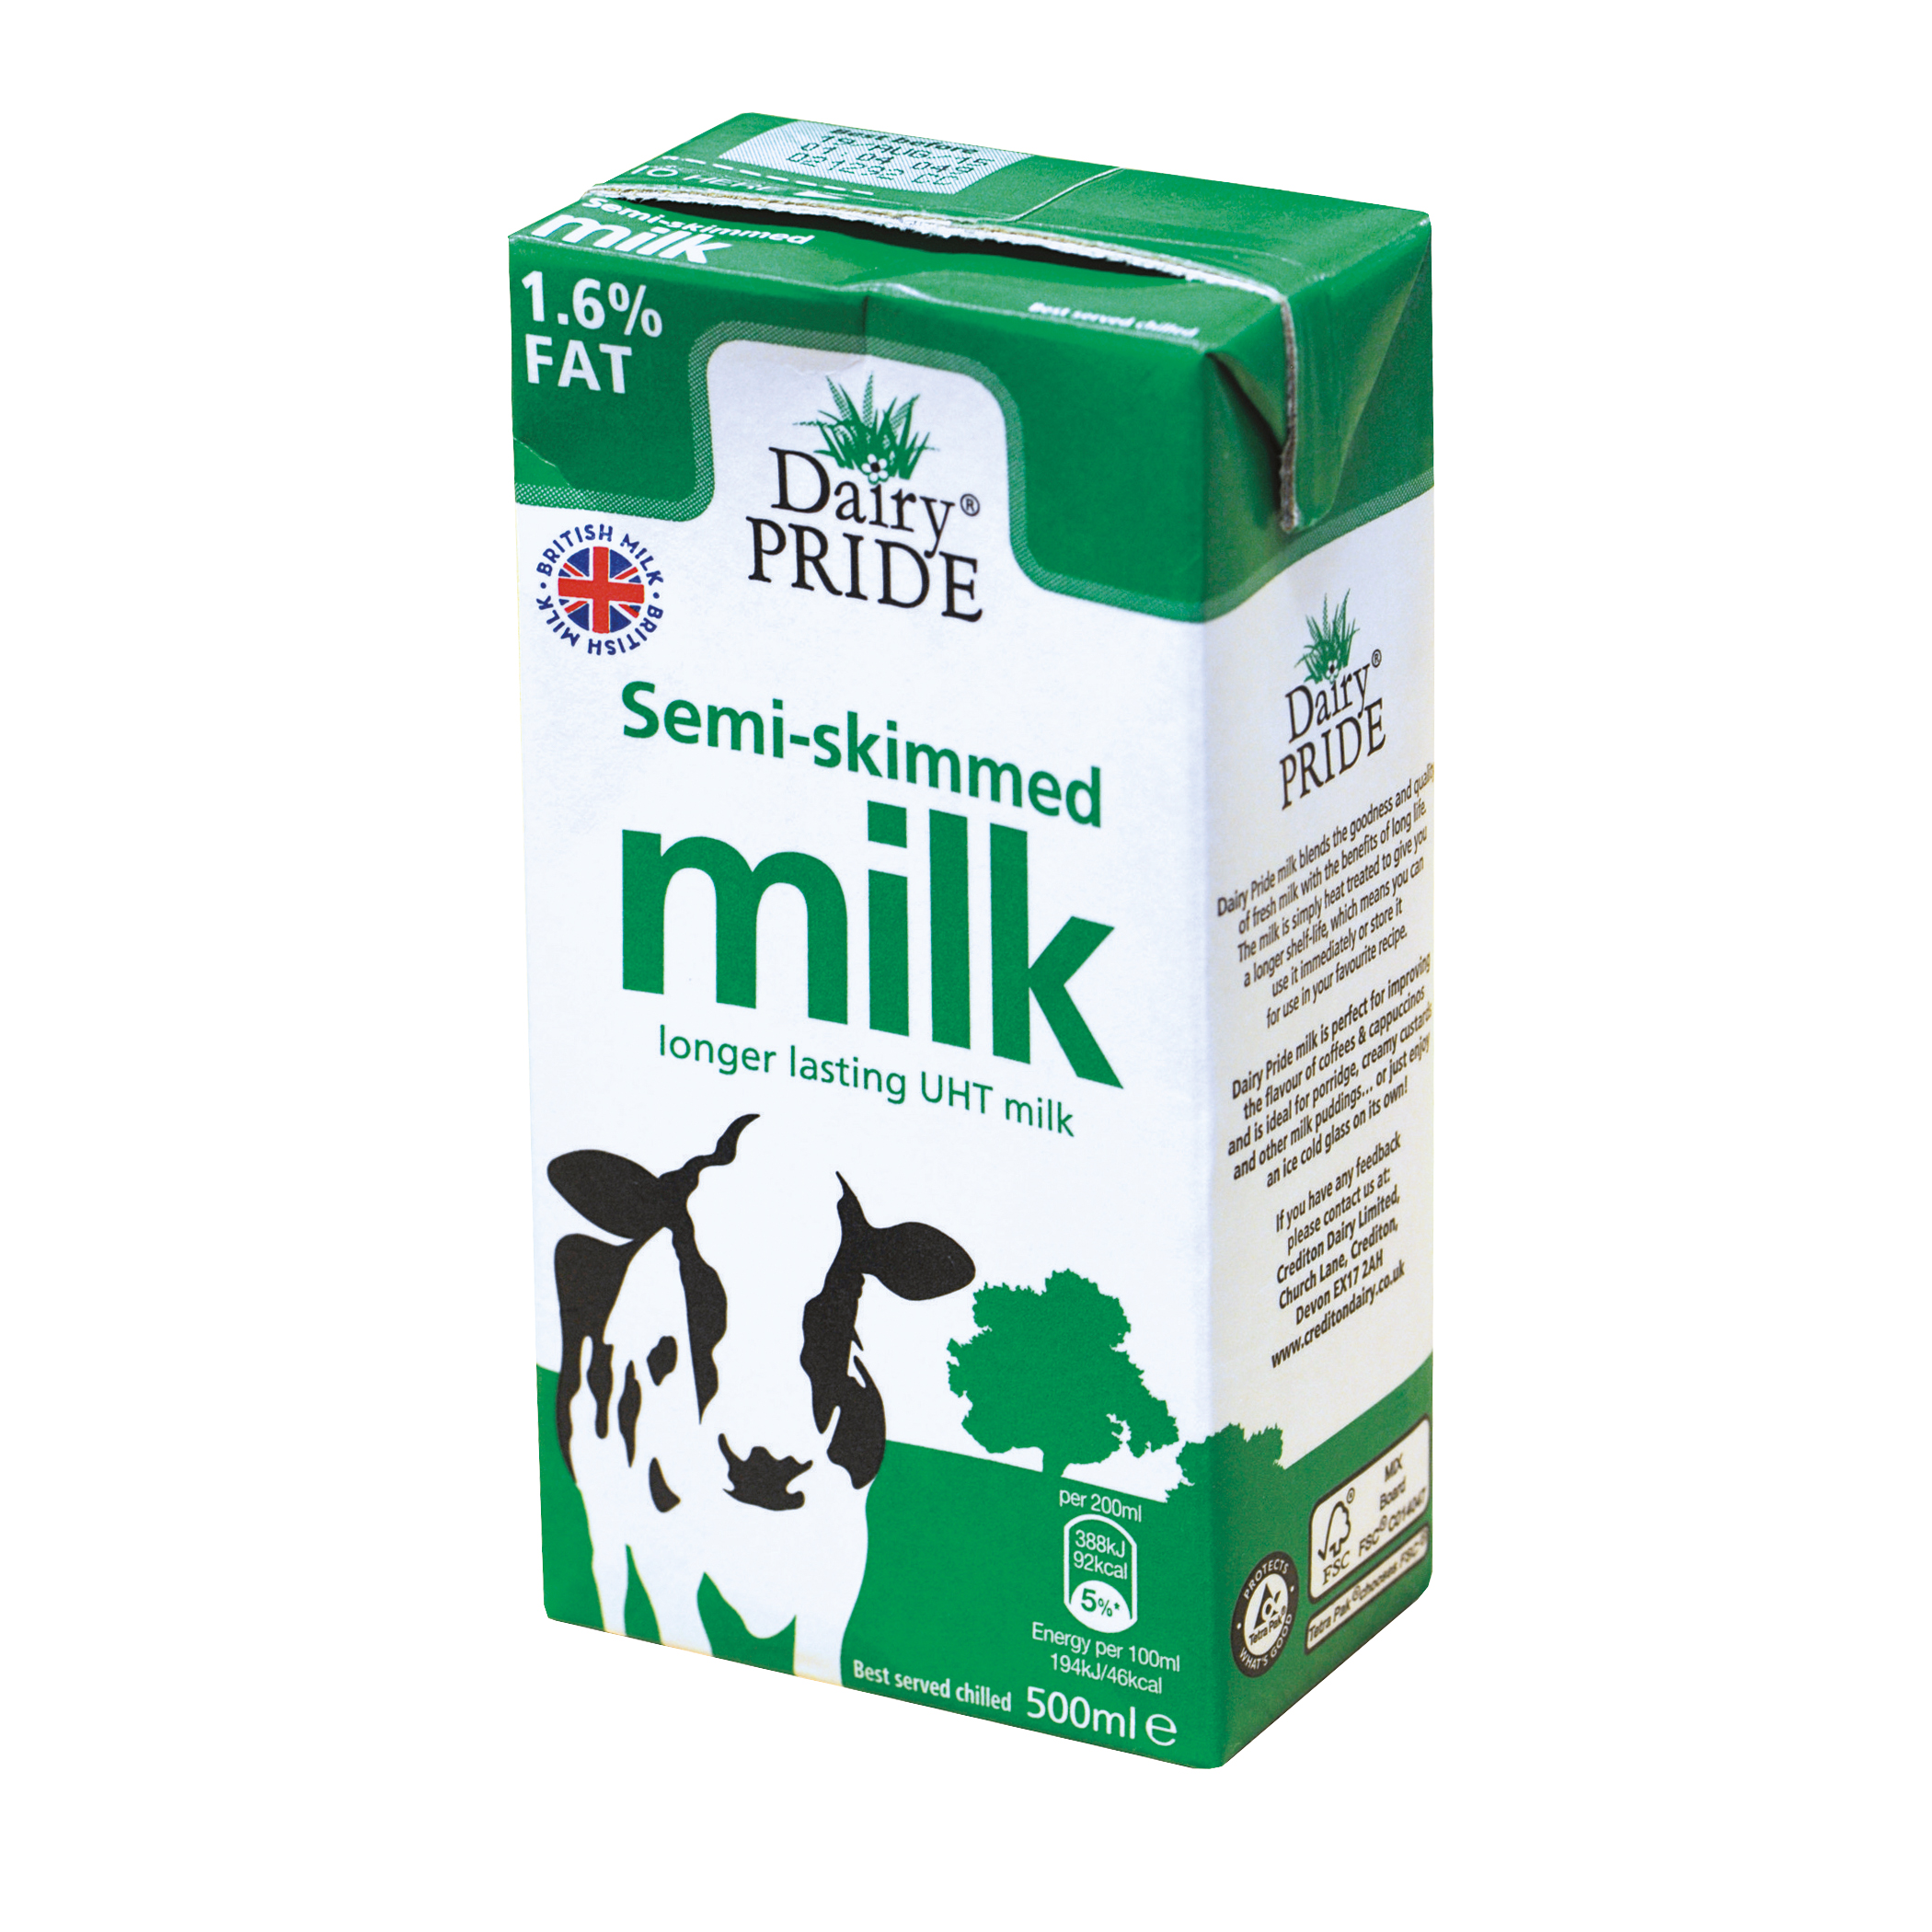 Milk Dairy Pride Semi Skimmed Milk UHT 500ml Ref 0402058 Pack 12